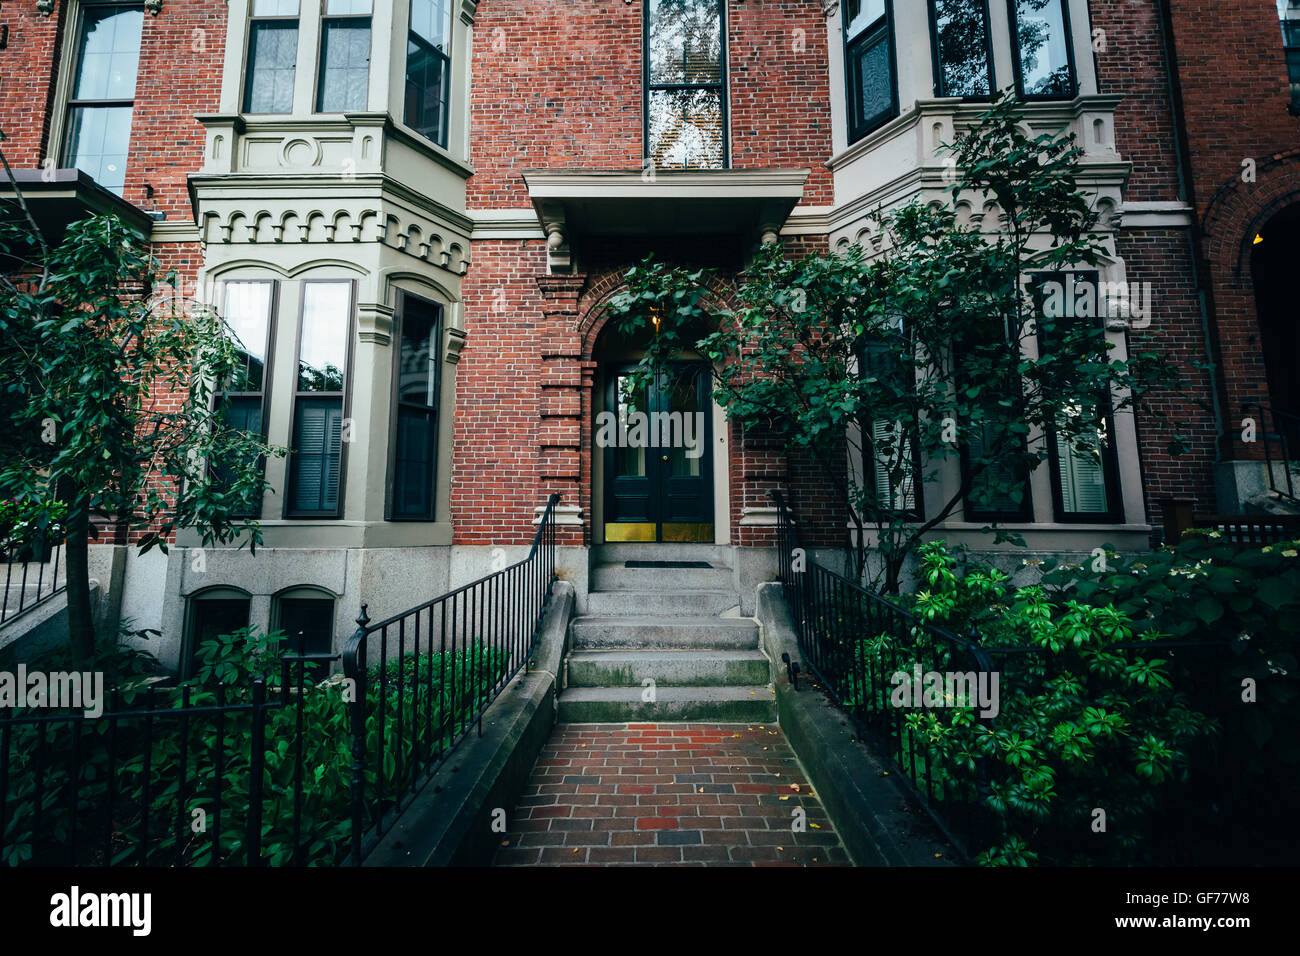 Houses in Bunker Hill, Charlestown, Boston, Massachusetts. - Stock Image